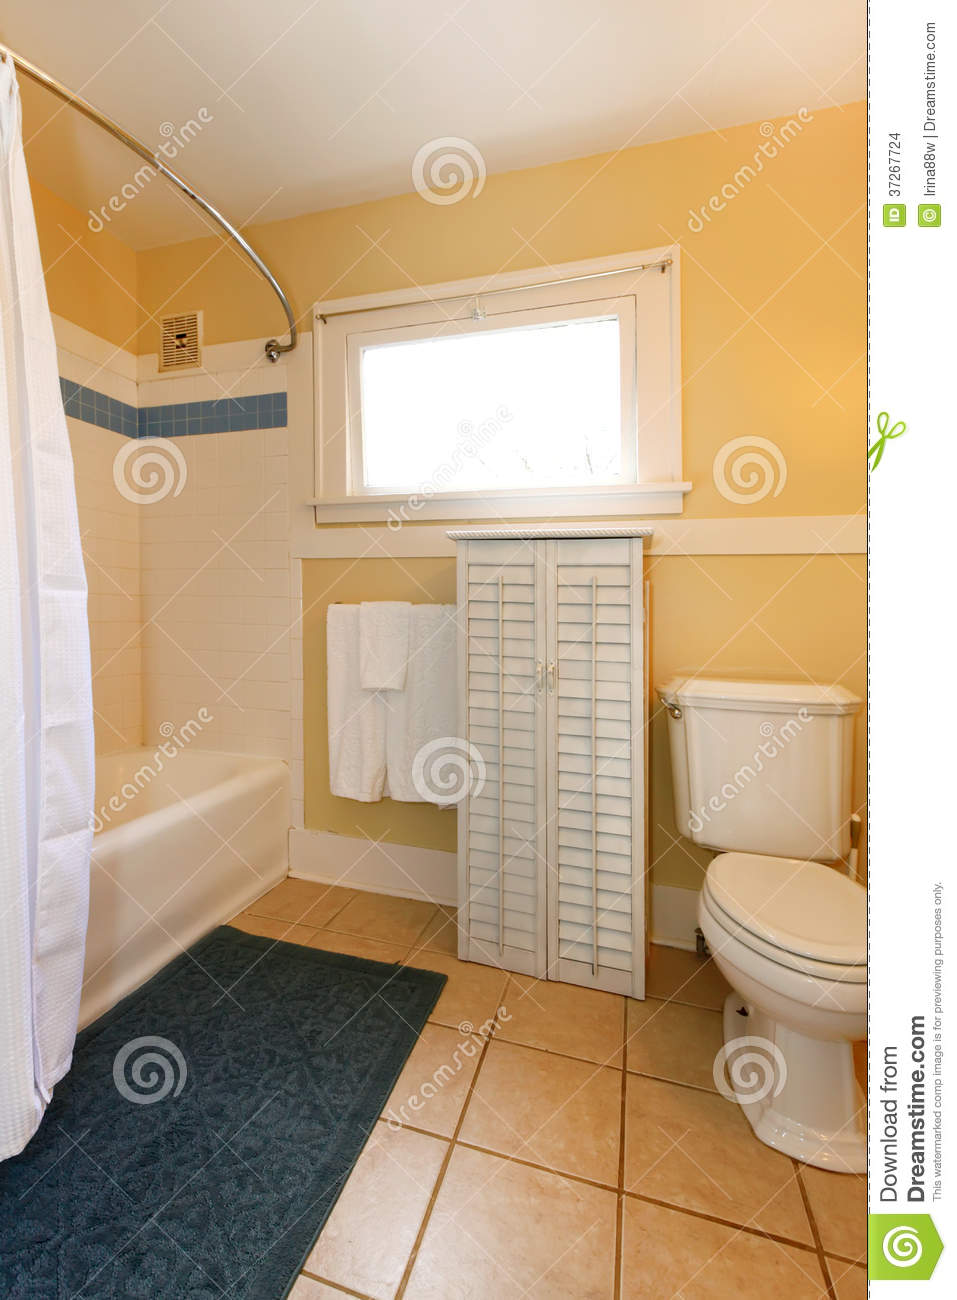 Cuartos De Baño En Beige:Bathroom Cabinets in a Yellow and Beige Walls